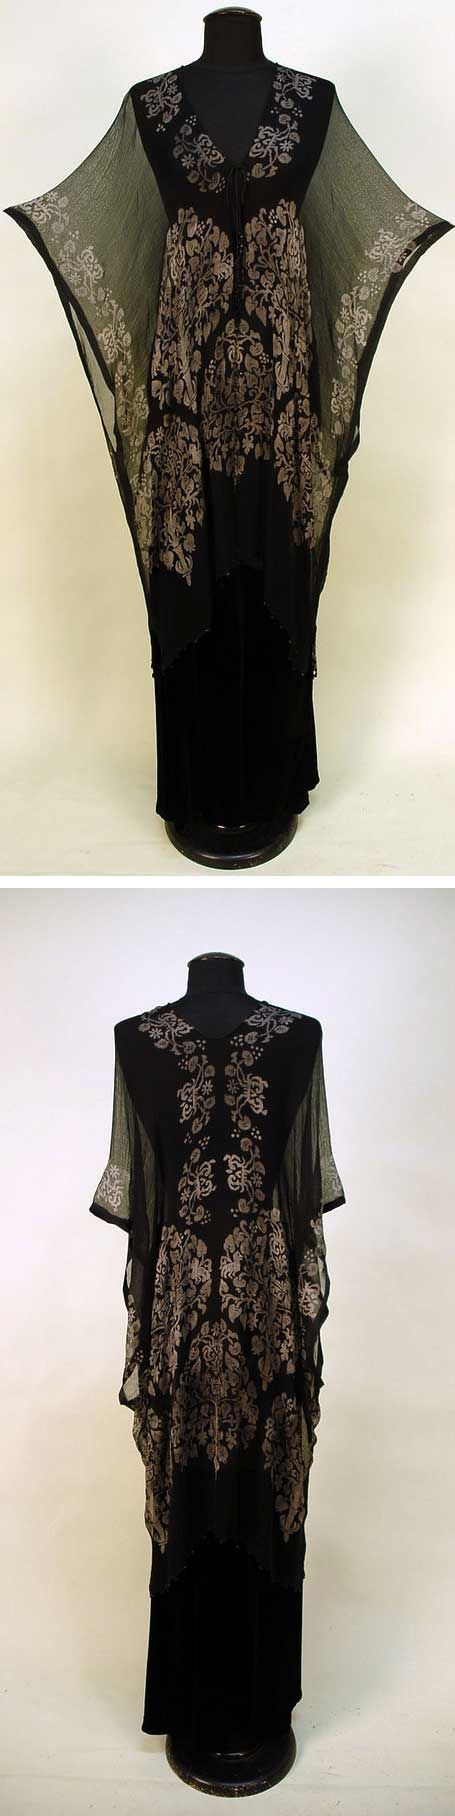 Stencilled black silk gauze tunic, probably Gallenga, 1920s. Square-cut wrap with silver Renaissance-style trees and stylized creatures. Black Venetian glass beads along hem and knotted cord closure with glass bead tassels. Whitaker Auctions